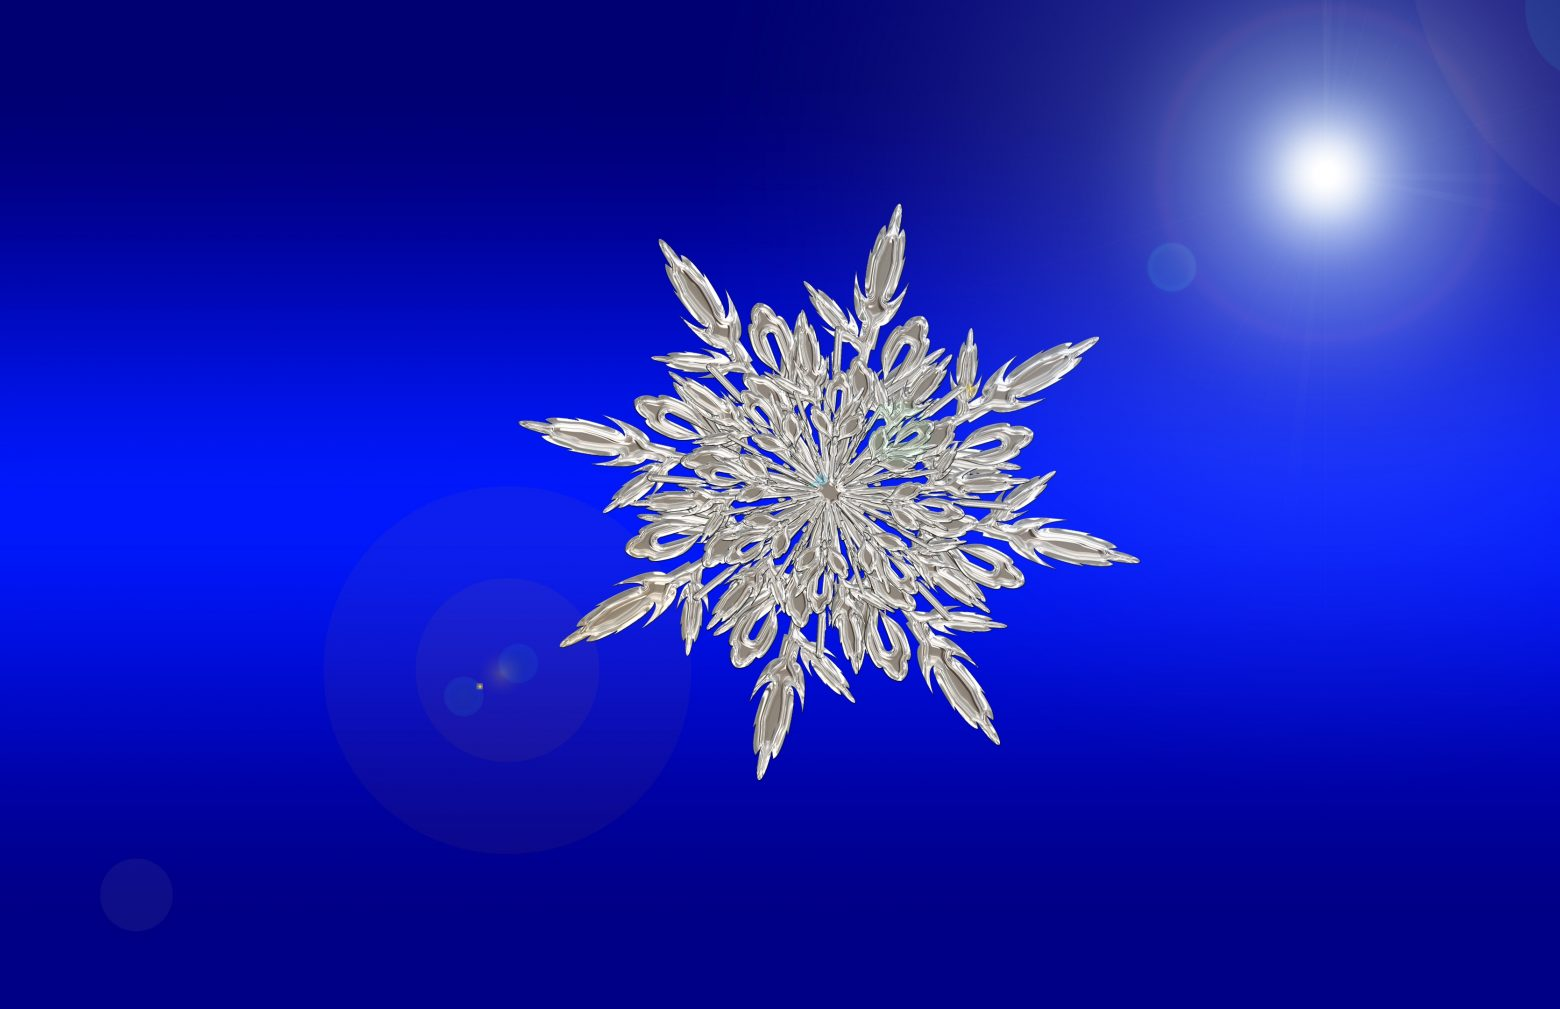 frost-490807